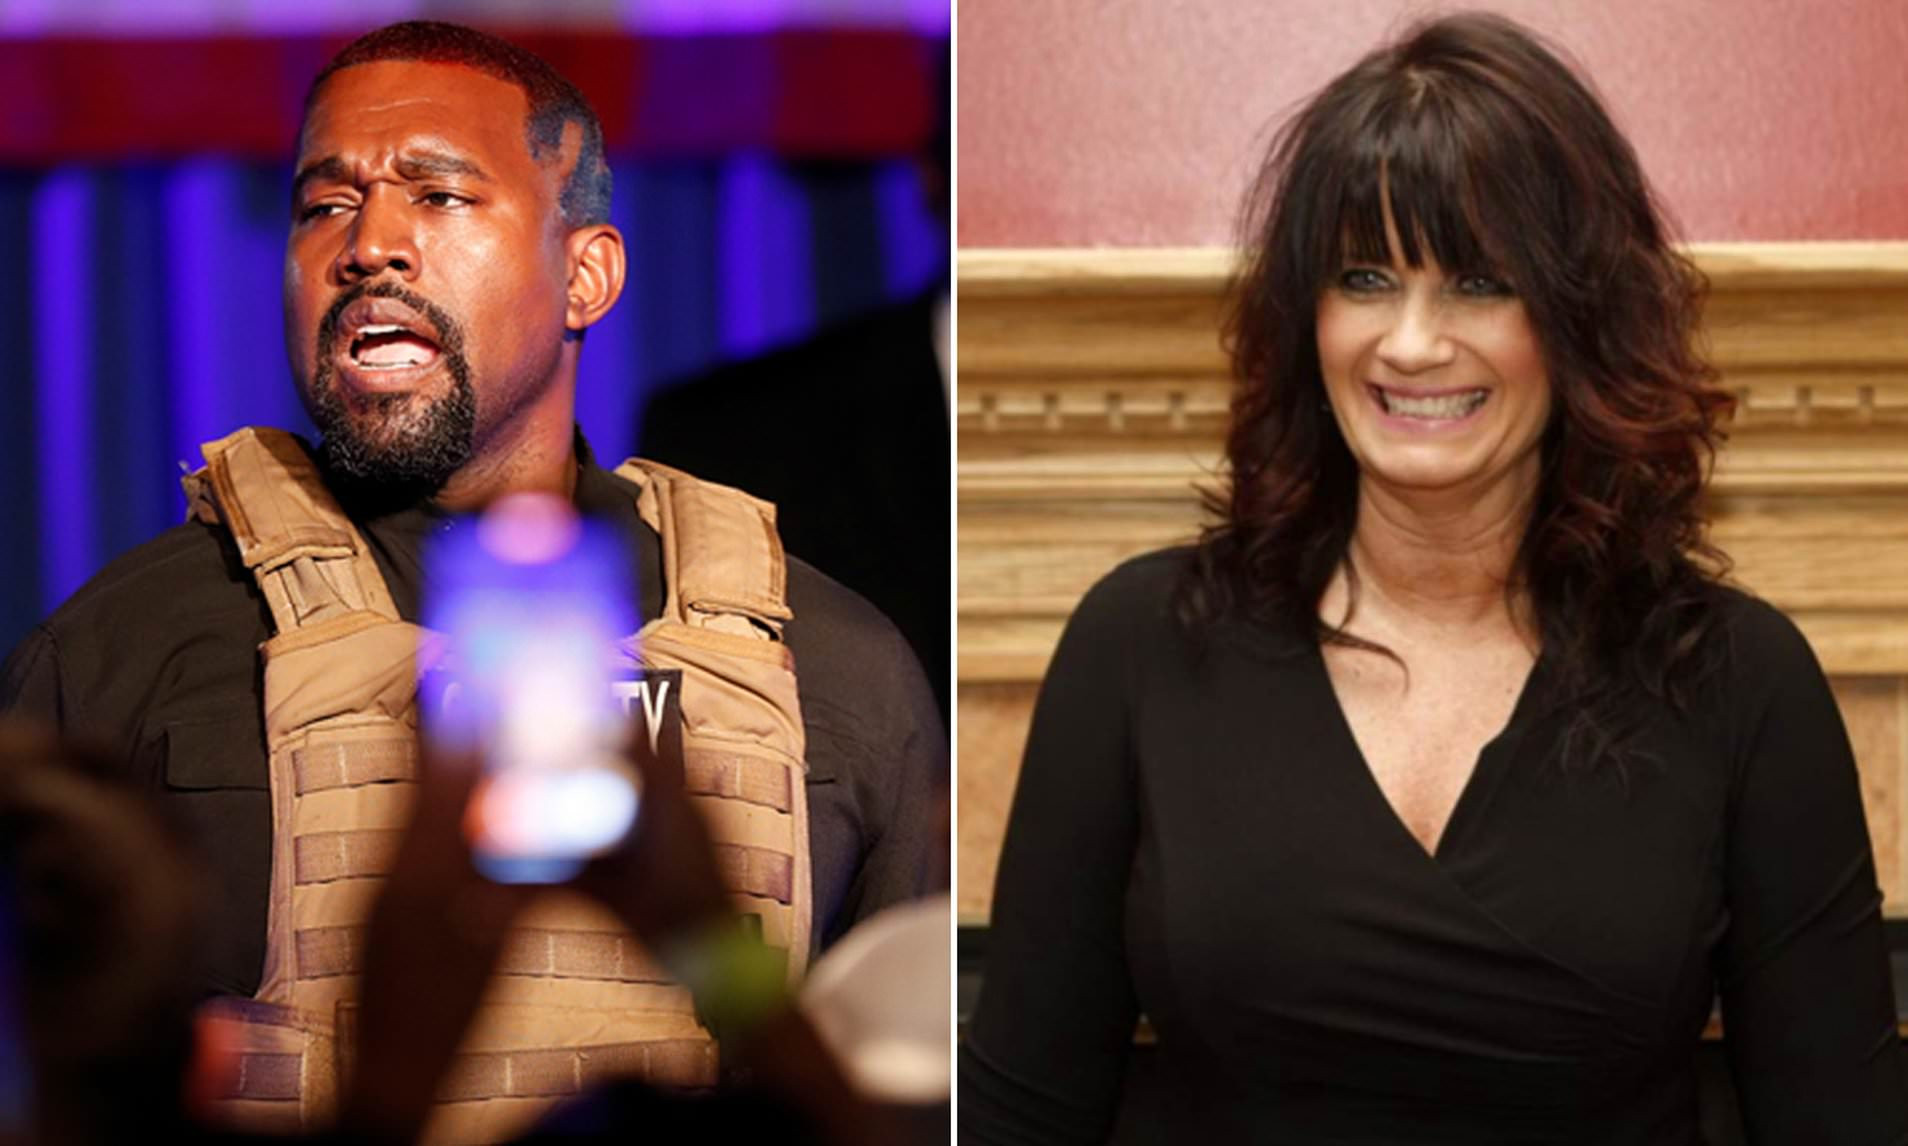 Kanye West officially lists Michelle Tidball as his vice President in ballot filing documents